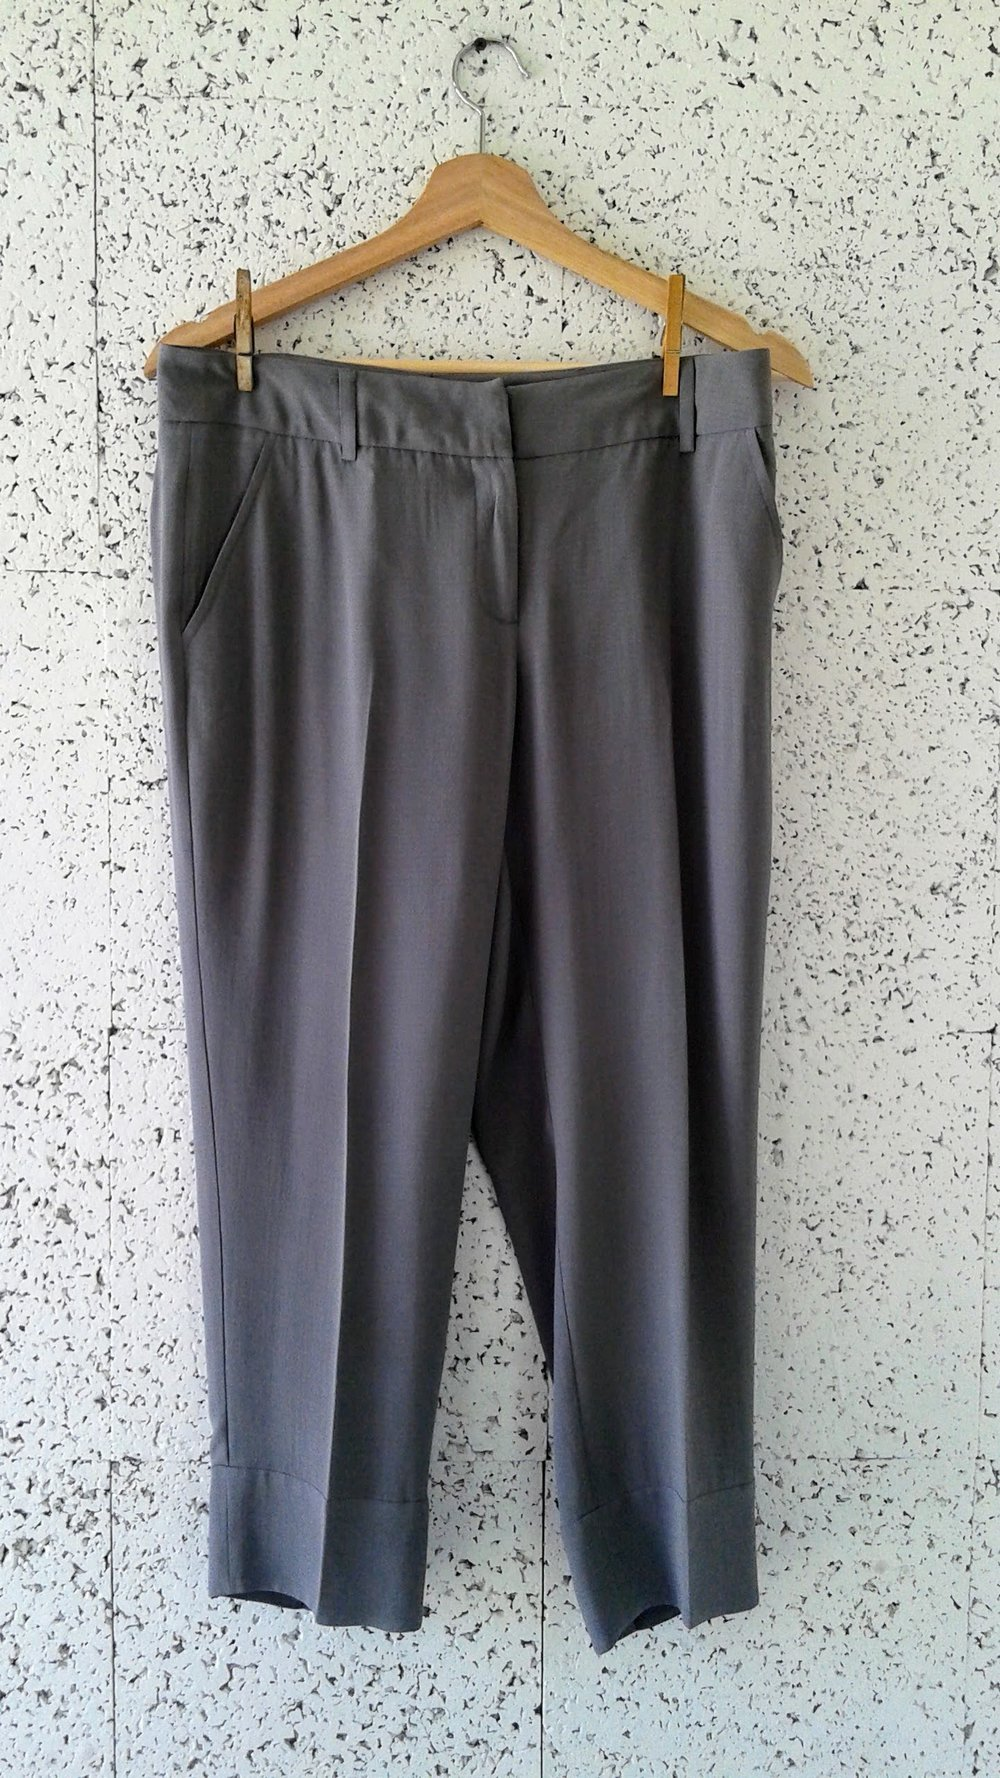 Eileen Fisher pants; Size 29, $45